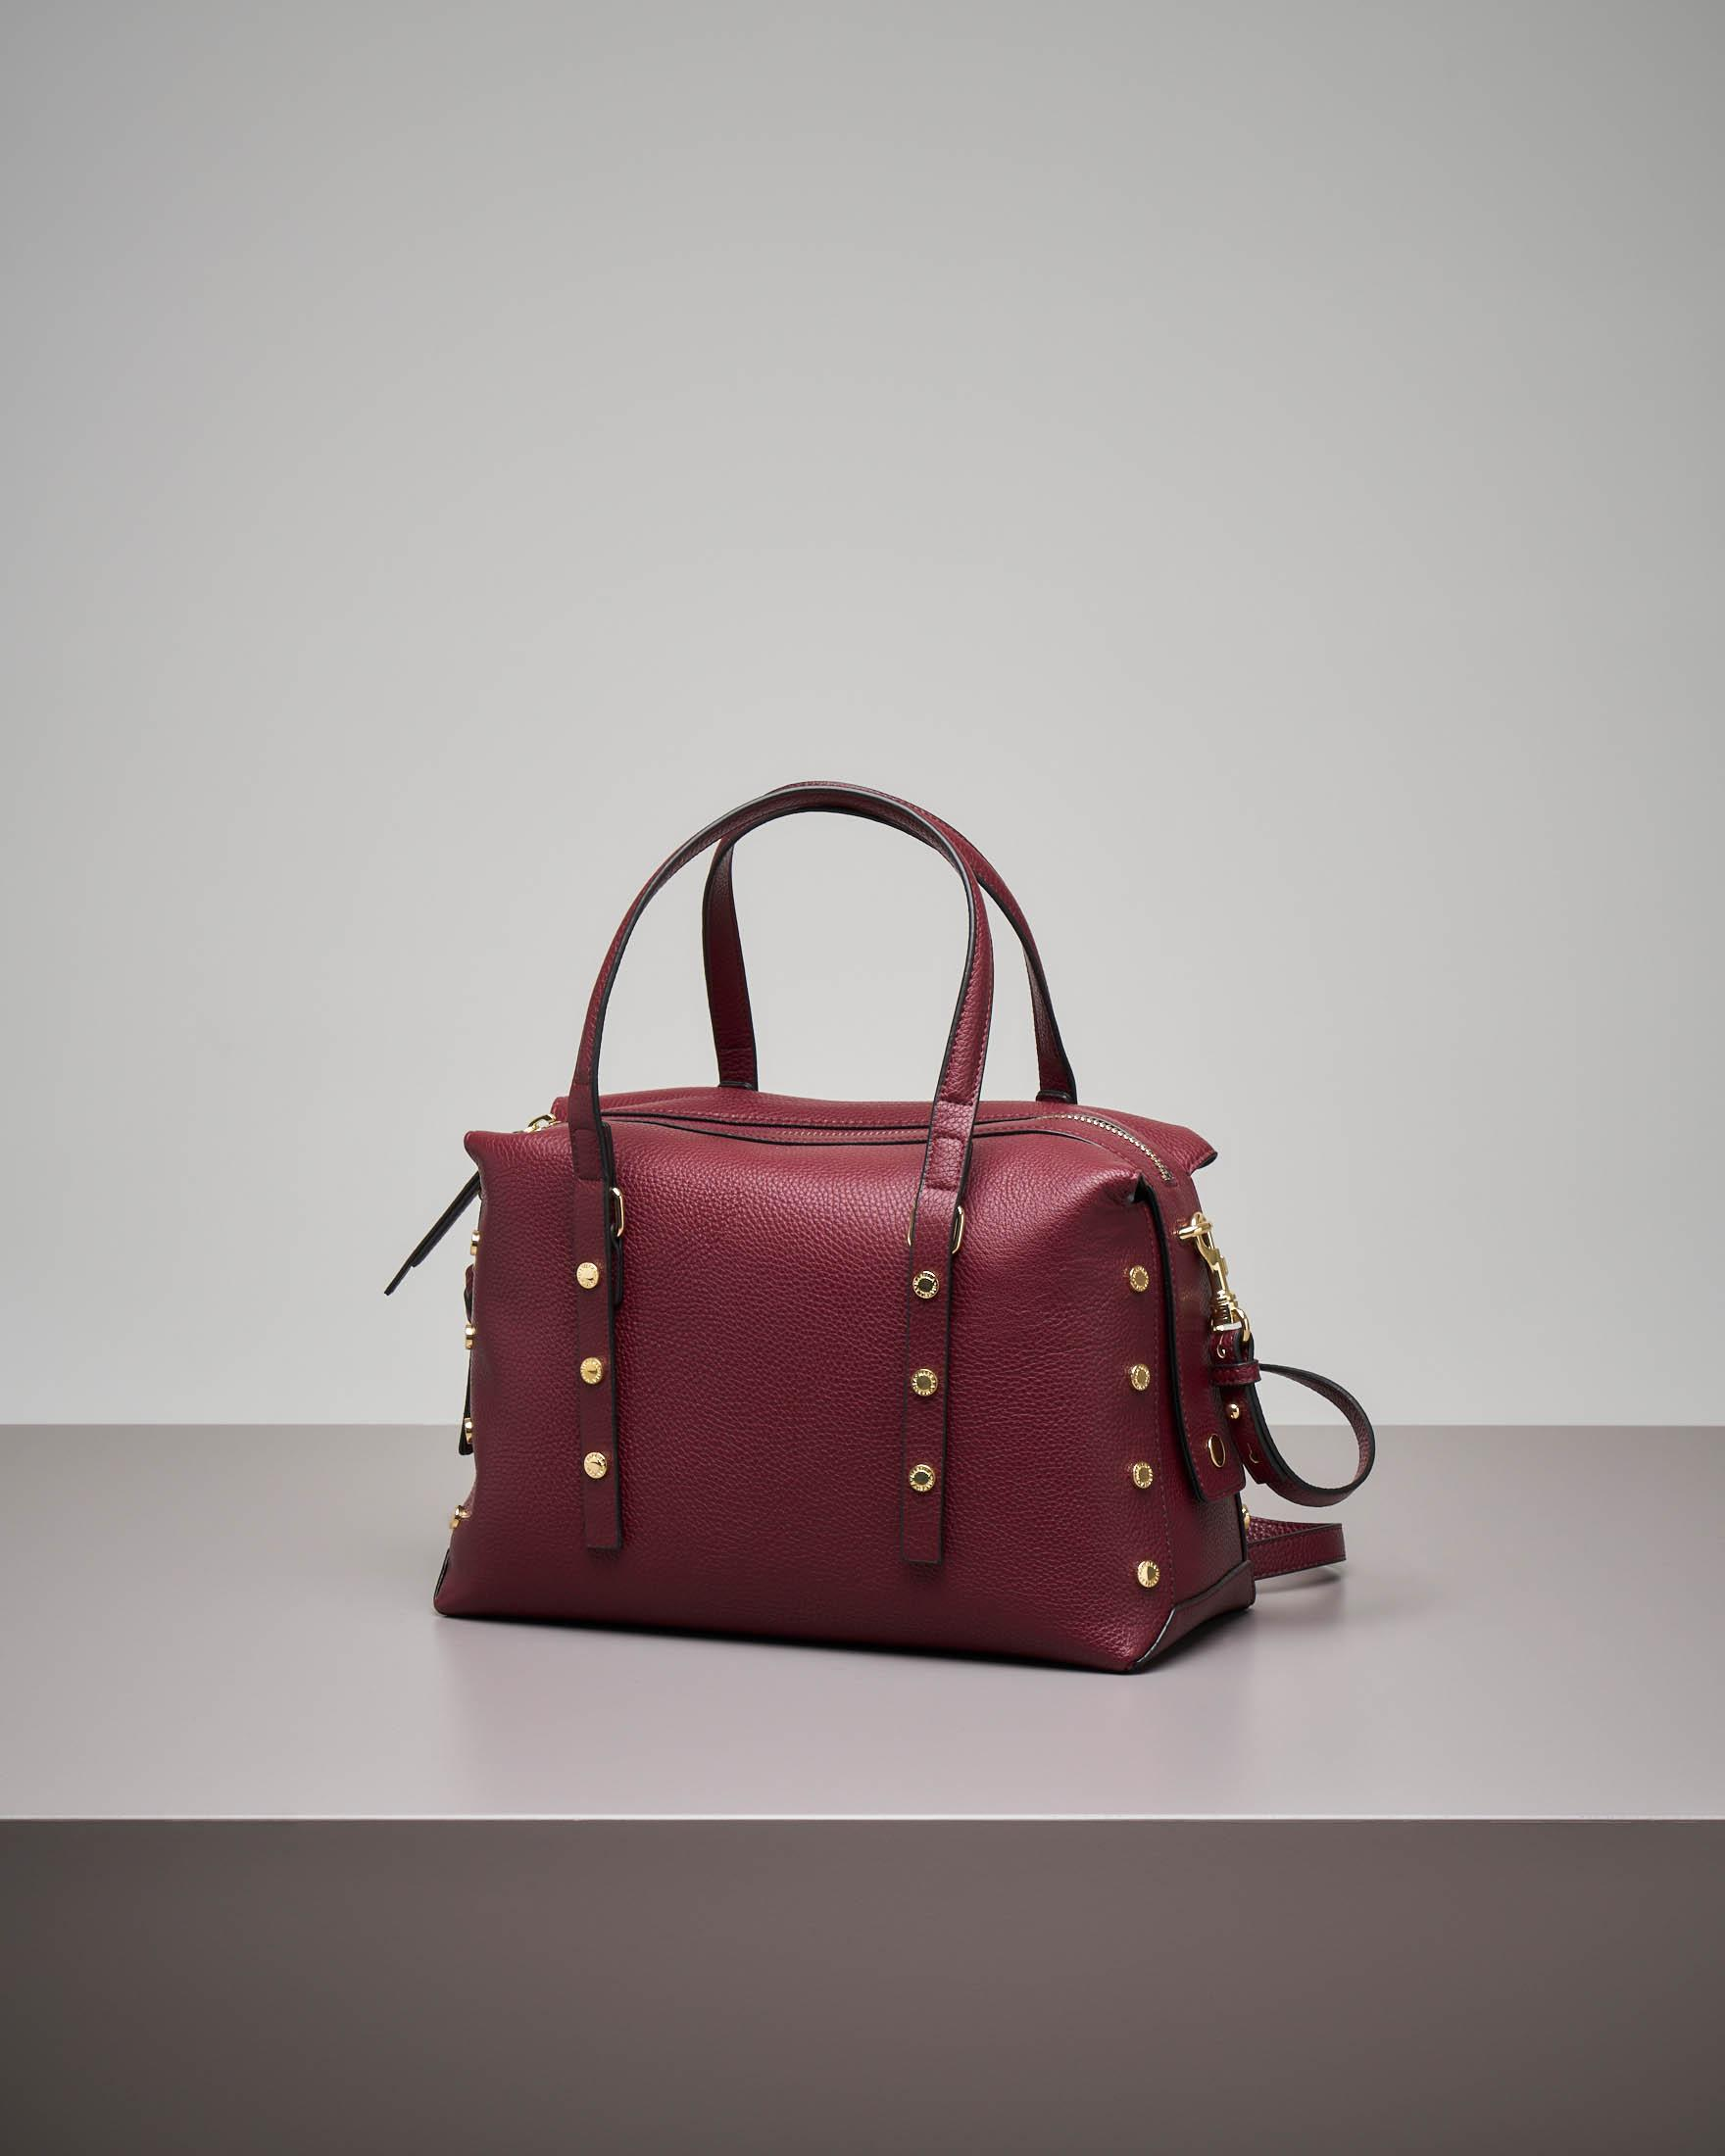 Bowling bag bordeaux con borchie applicate